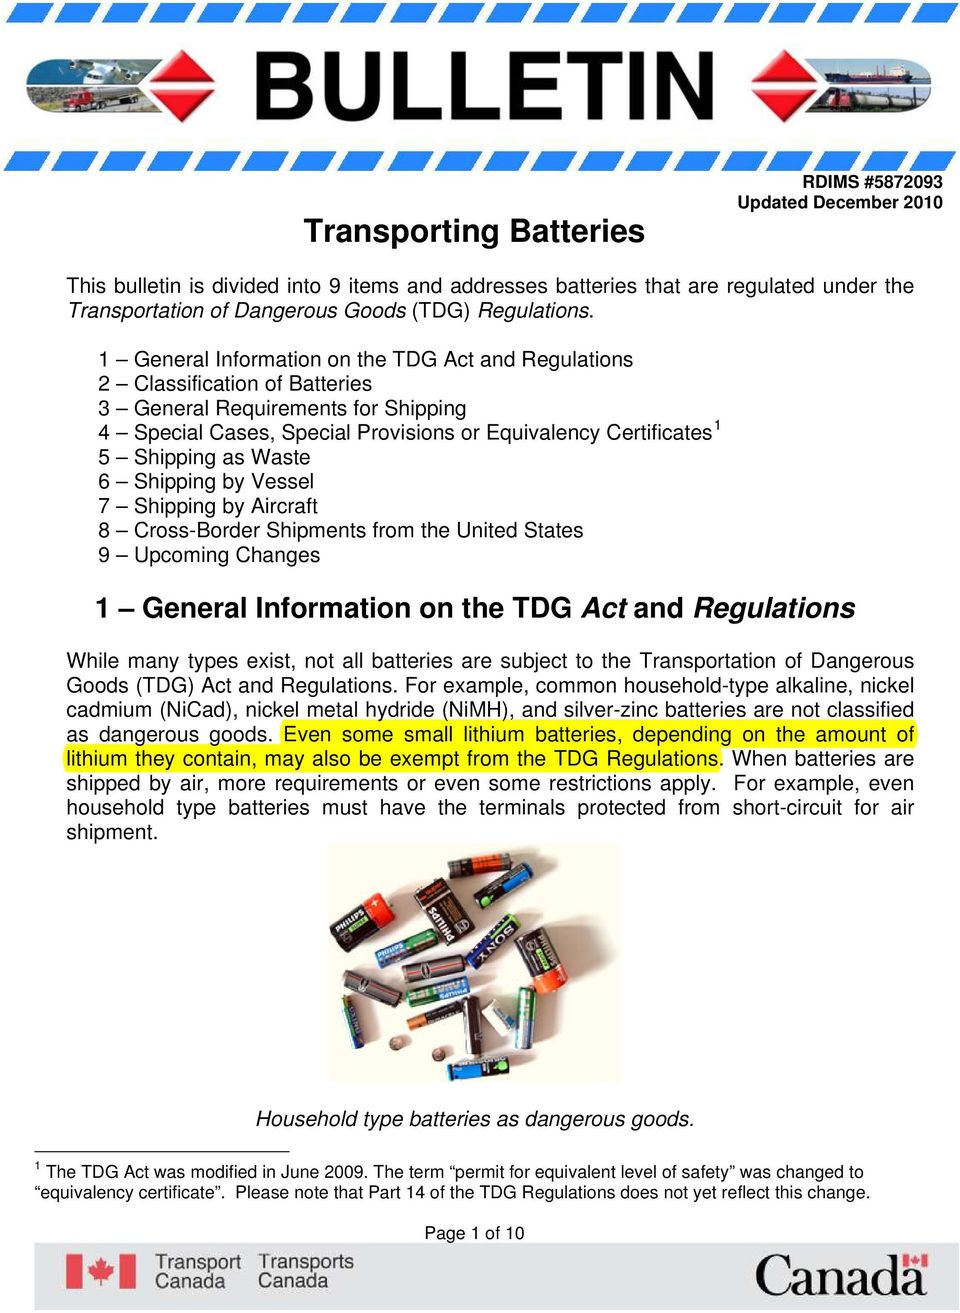 1 General Information on the TDG Act and Regulations 2 Classification of Batteries 3 General Requirements for Shipping 4 Special Cases, Special Provisions or Equivalency Certificates 1 5 Shipping as